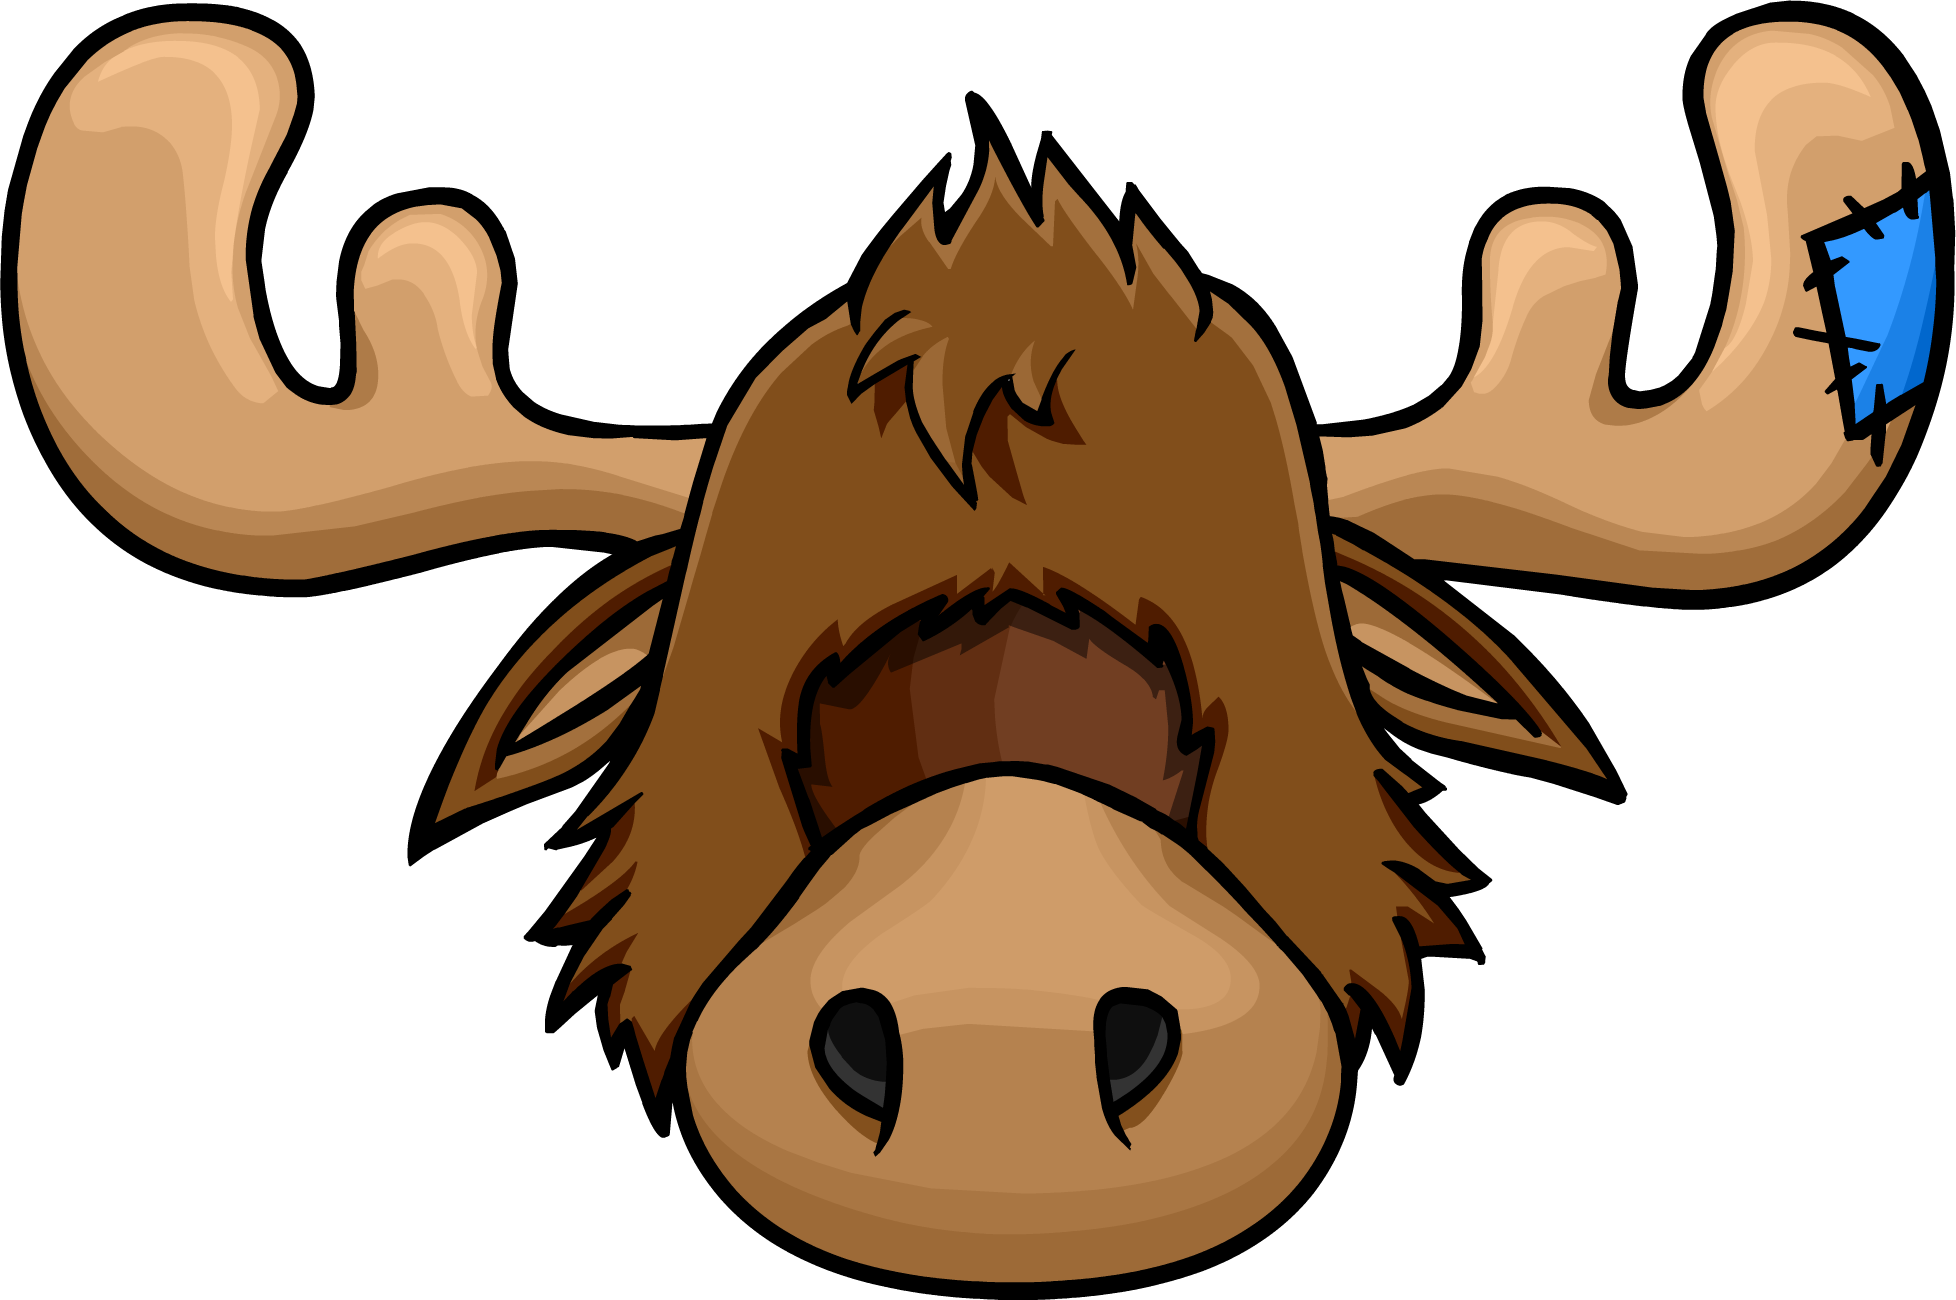 banner library download Zeus clipart mascot. The moose head club